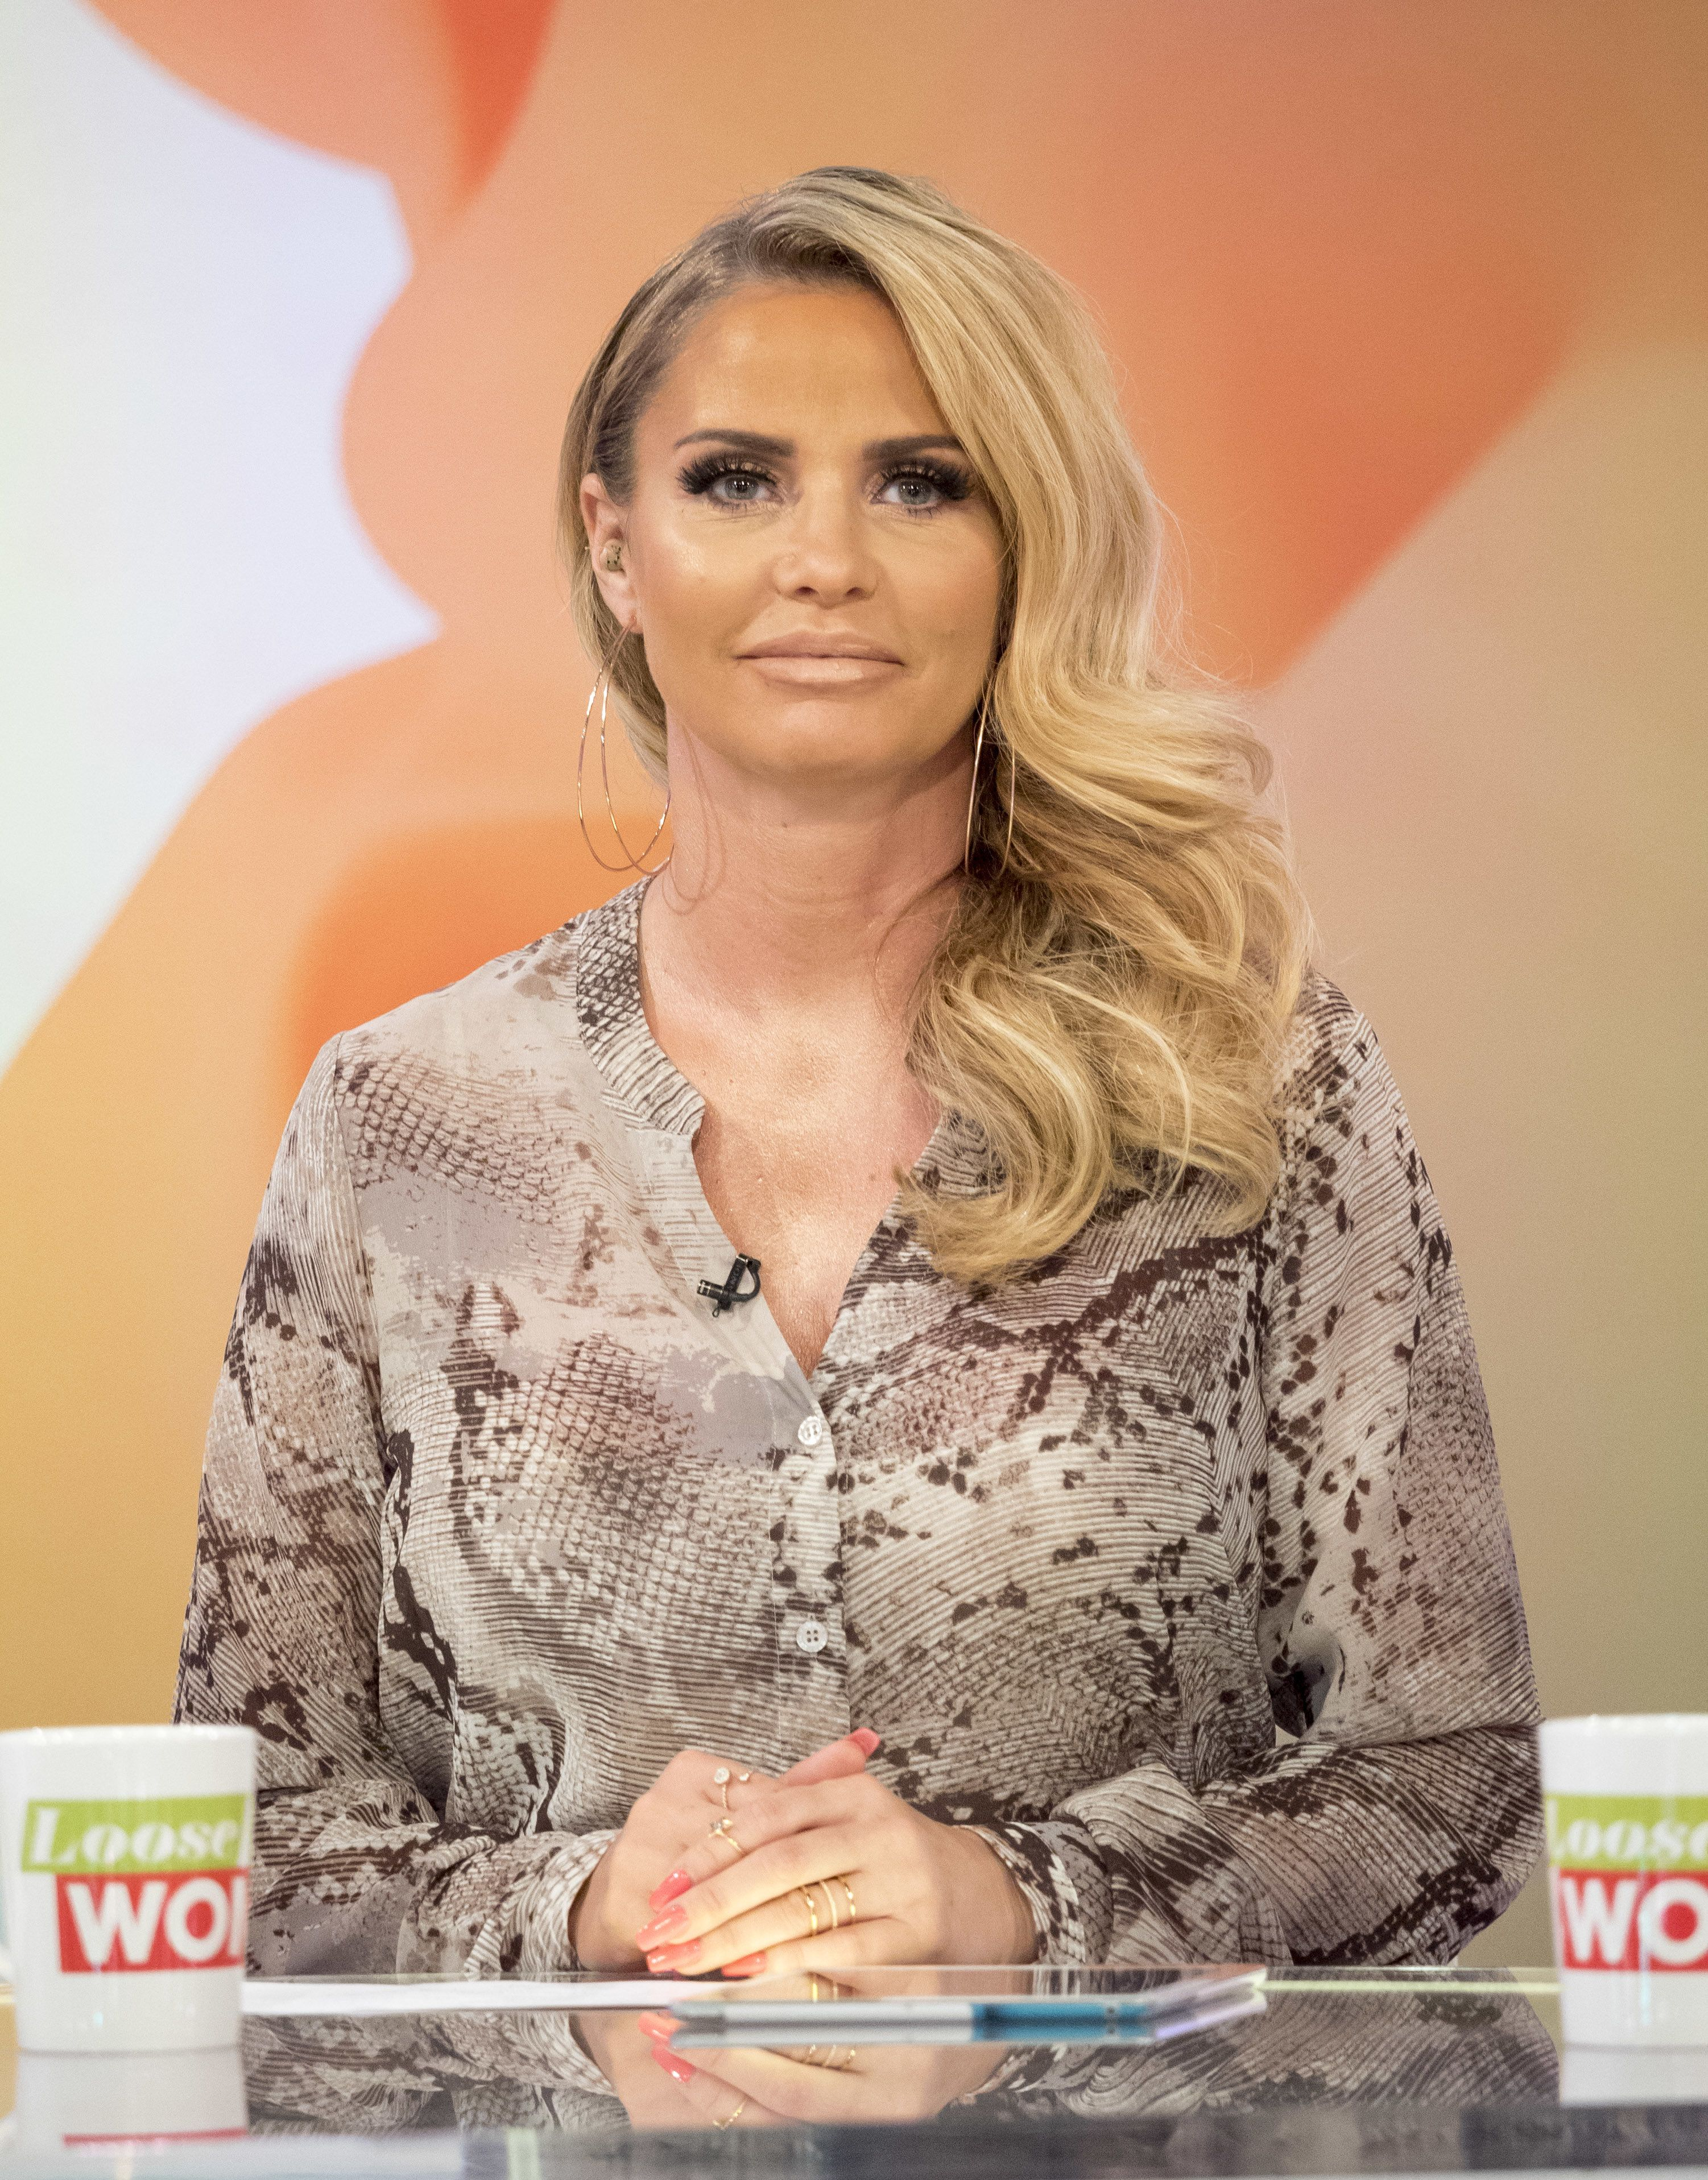 Katie Price On The One Moment She Got A Telling Off From 'Loose Women'